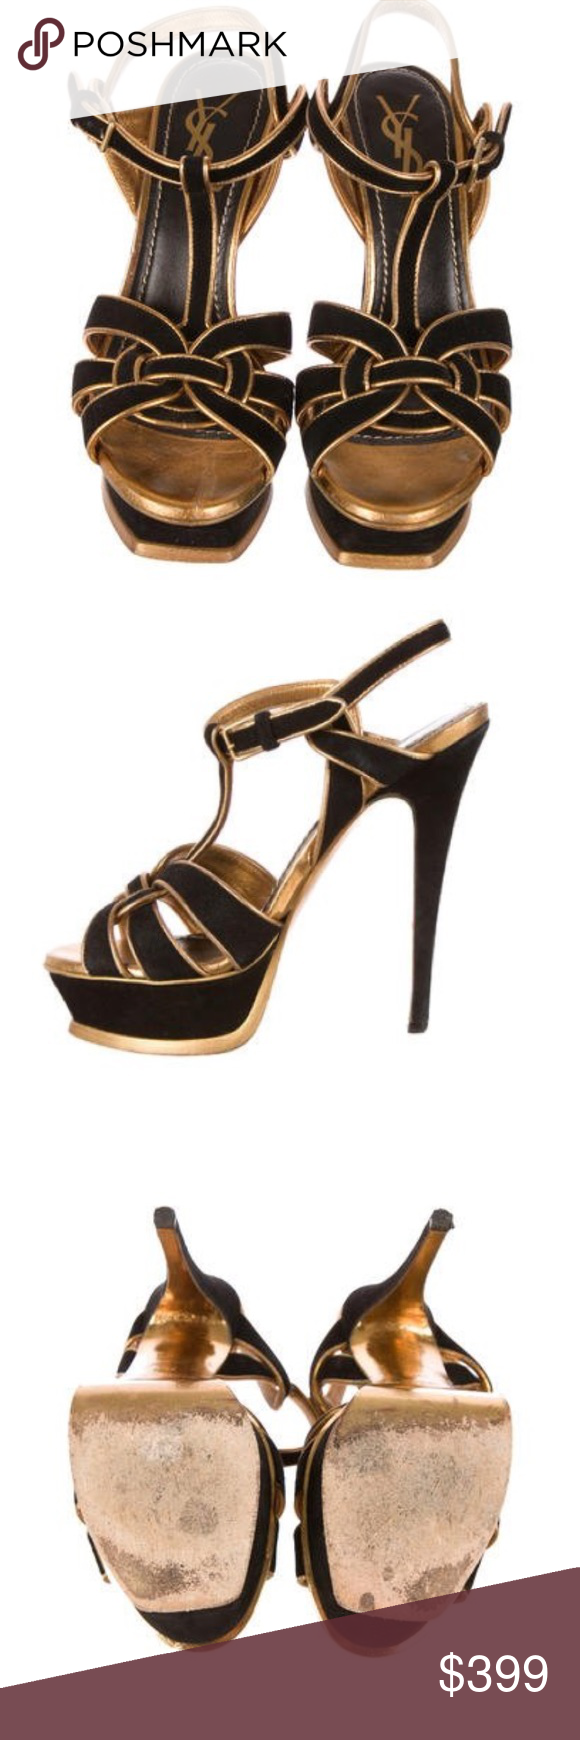 c26a2969a79 1Day SALE! AUTHENTIC YSL tribute sandal! Pre-😍 D The YSL tribute is ...